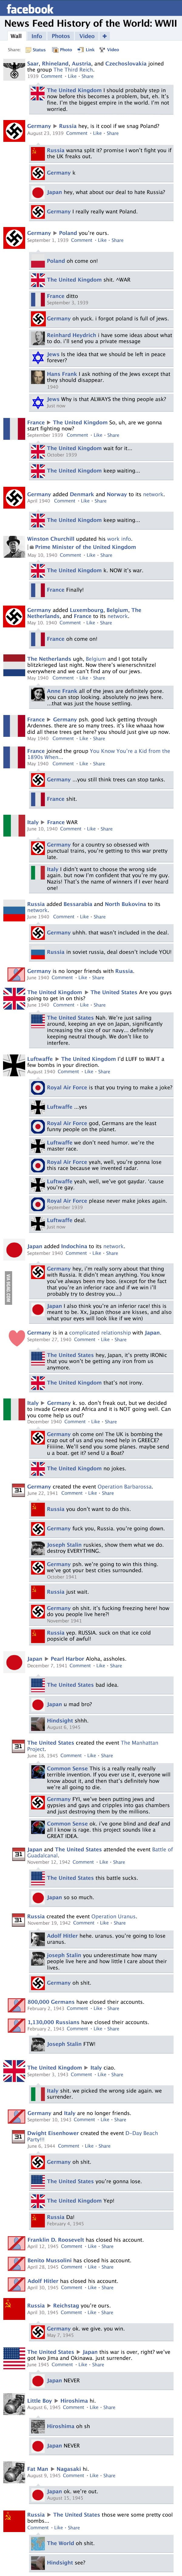 Facebook on WWII